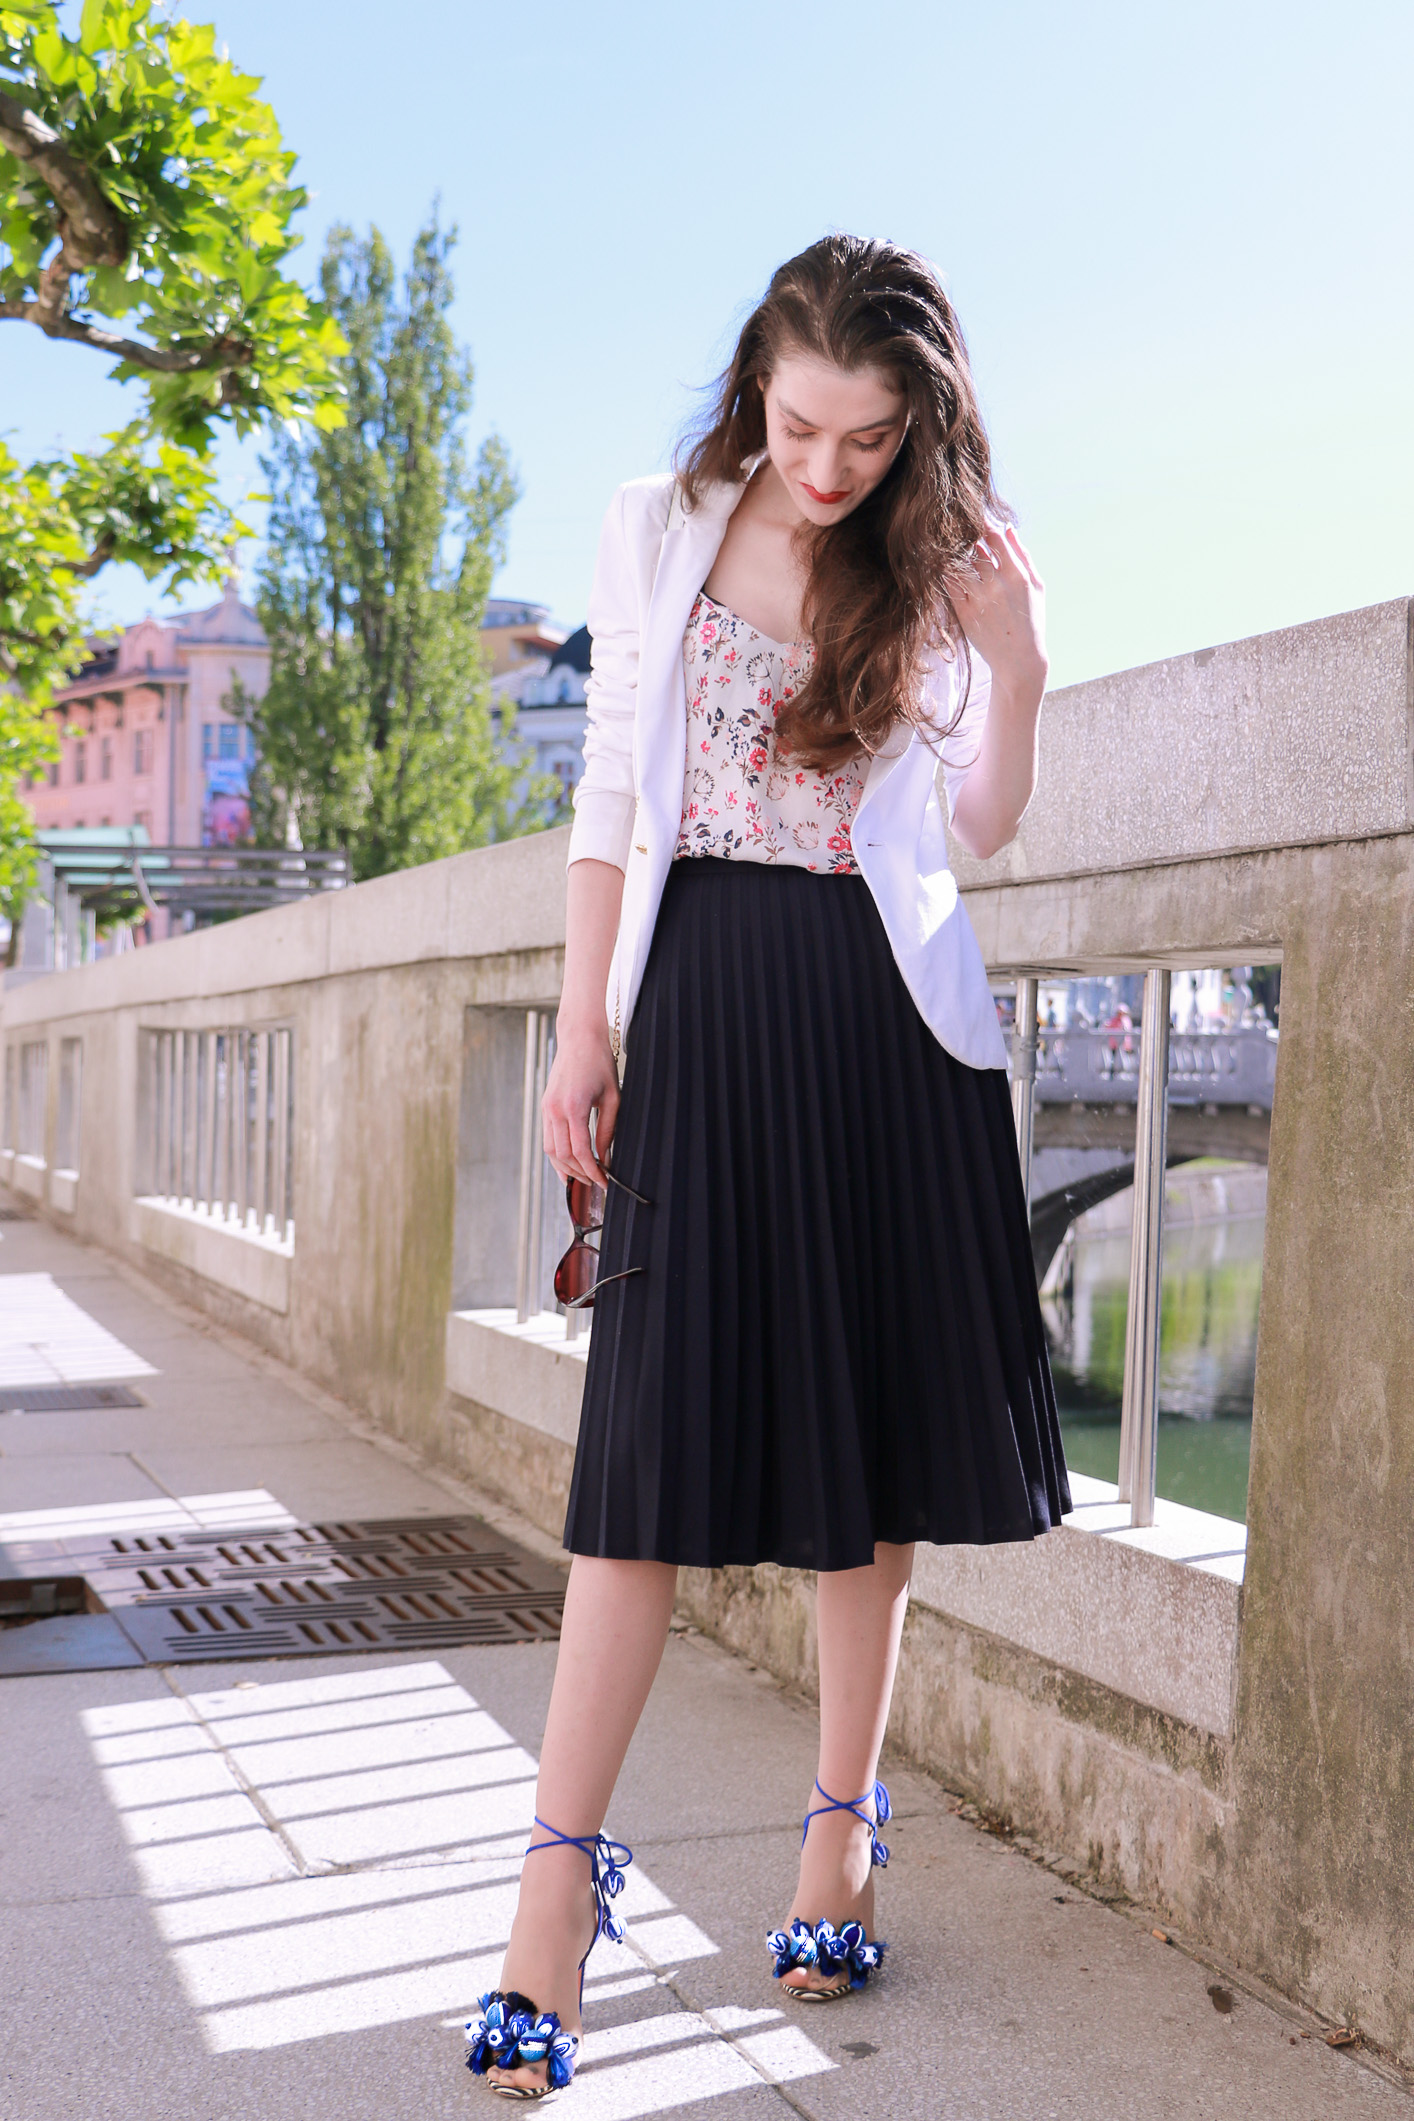 Fashion blogger Veronika Lipar of Brunette From Wall Street sharing how to style black vintage midi pleated skirt, blue Tropicana tasseled beaded sandals from Aquazzura, floral top, and white blazer for a chic summer look